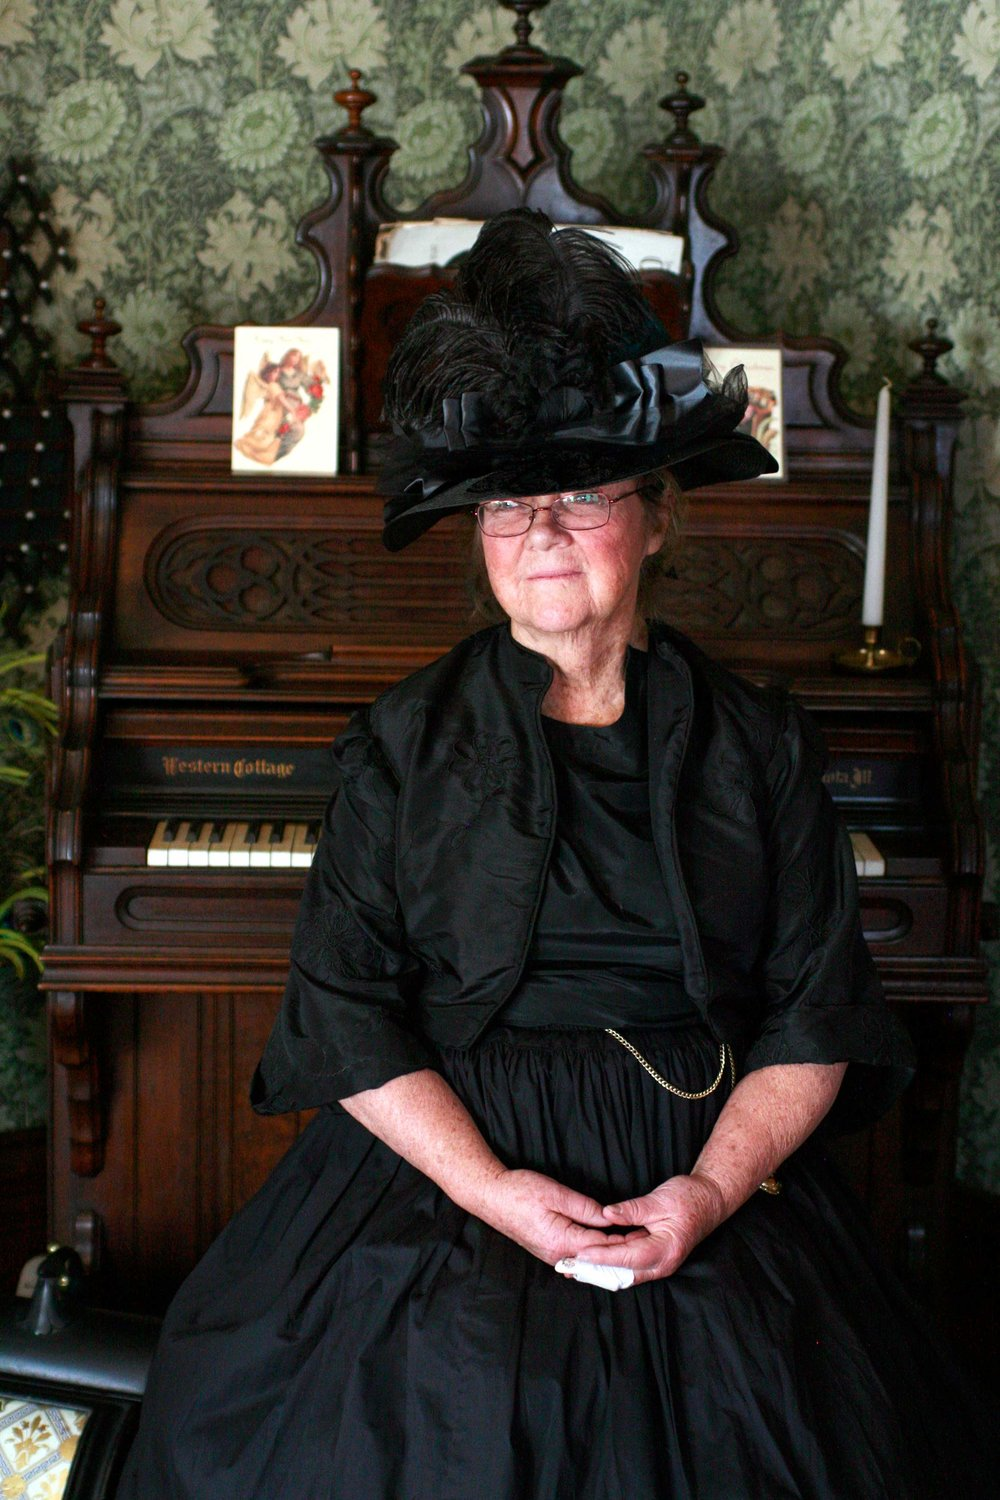 A volunteer docent sits at the organ in the Avery House